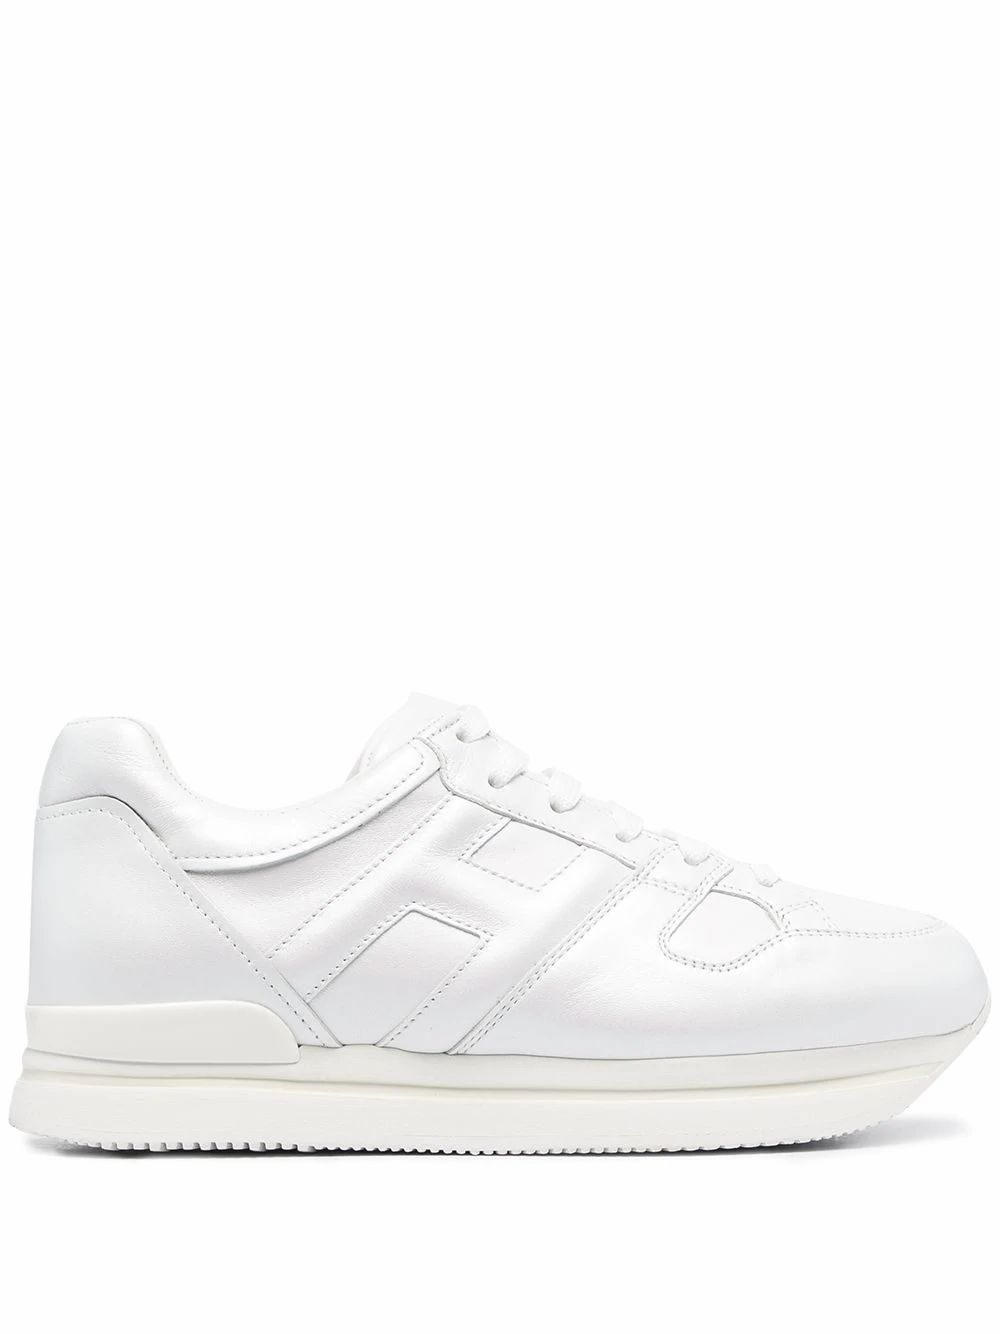 Hogan Leathers HOGAN WOMEN'S HXW2220T548O4KB001 WHITE LEATHER SNEAKERS